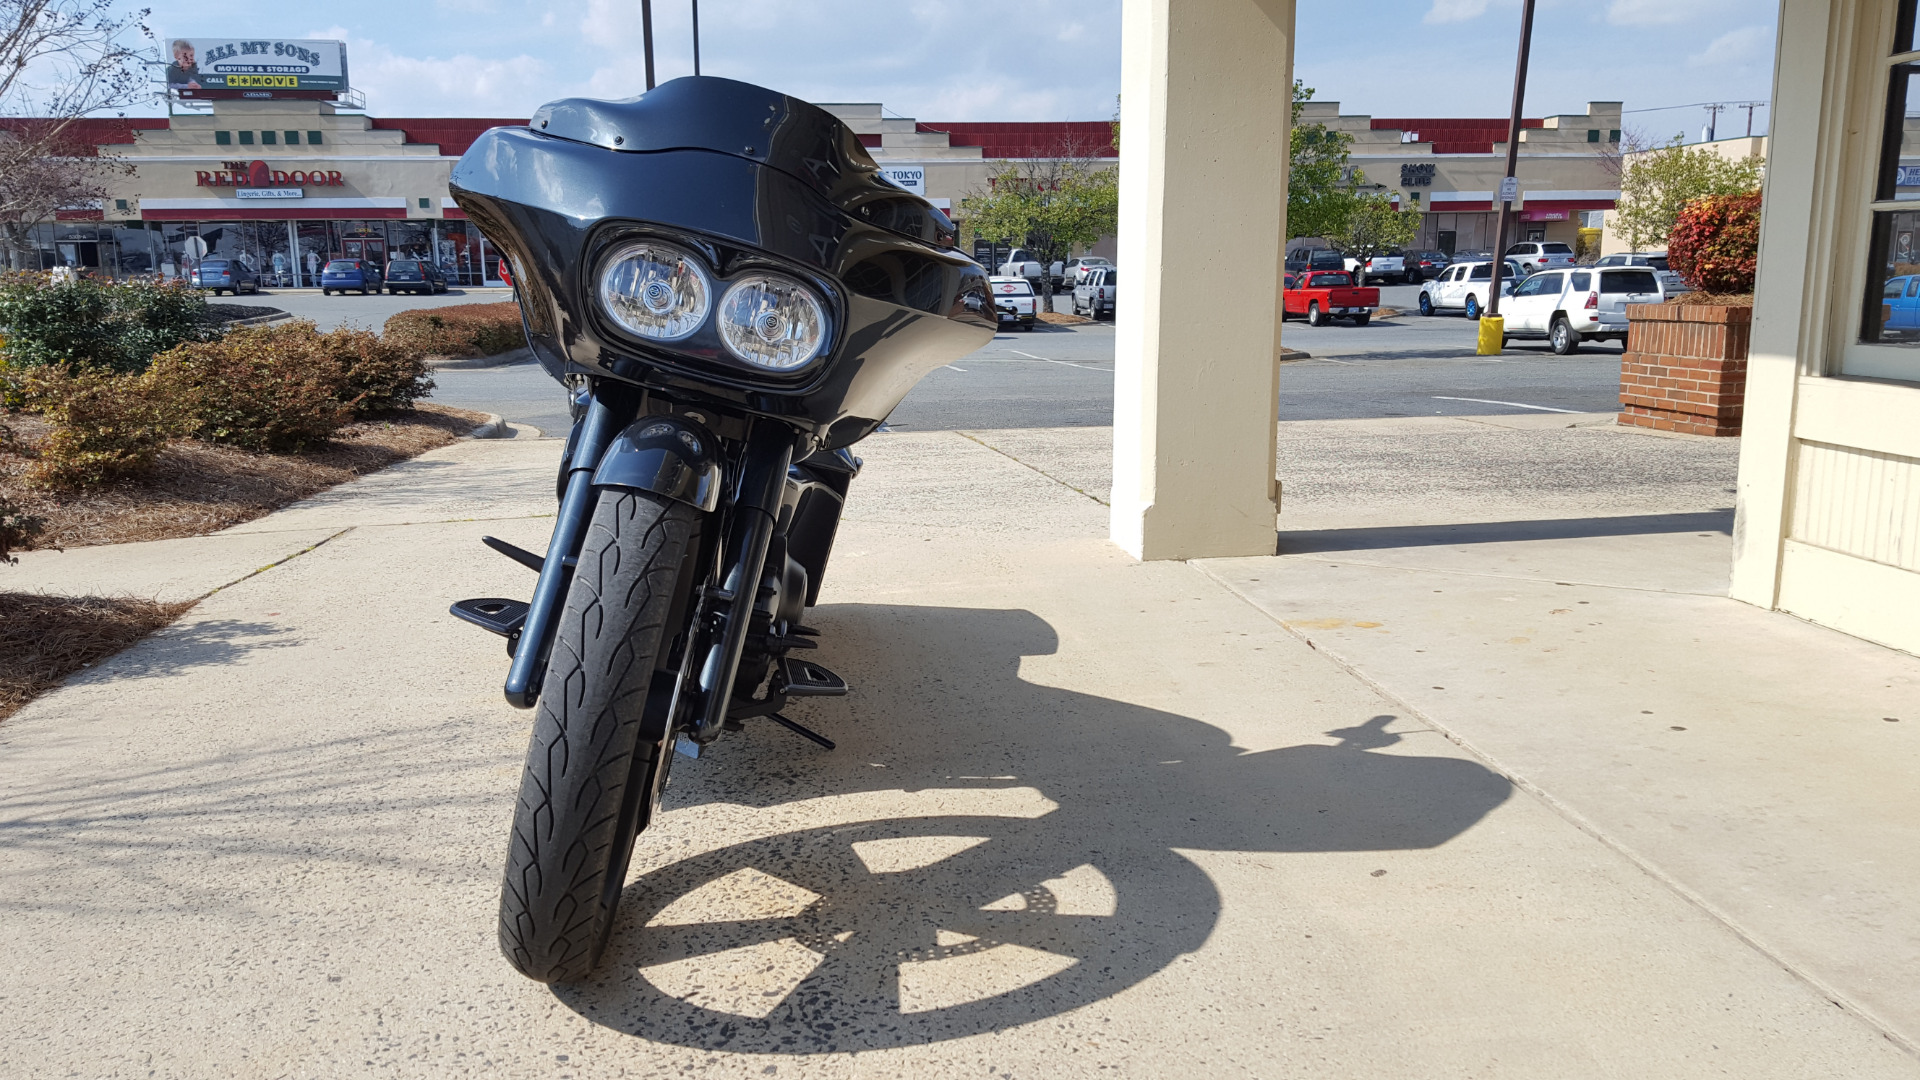 Used 2012 Harley-Davidson ROAD GLIDE NASI BAGGER for sale Sold at Formula Imports in Charlotte NC 28227 3